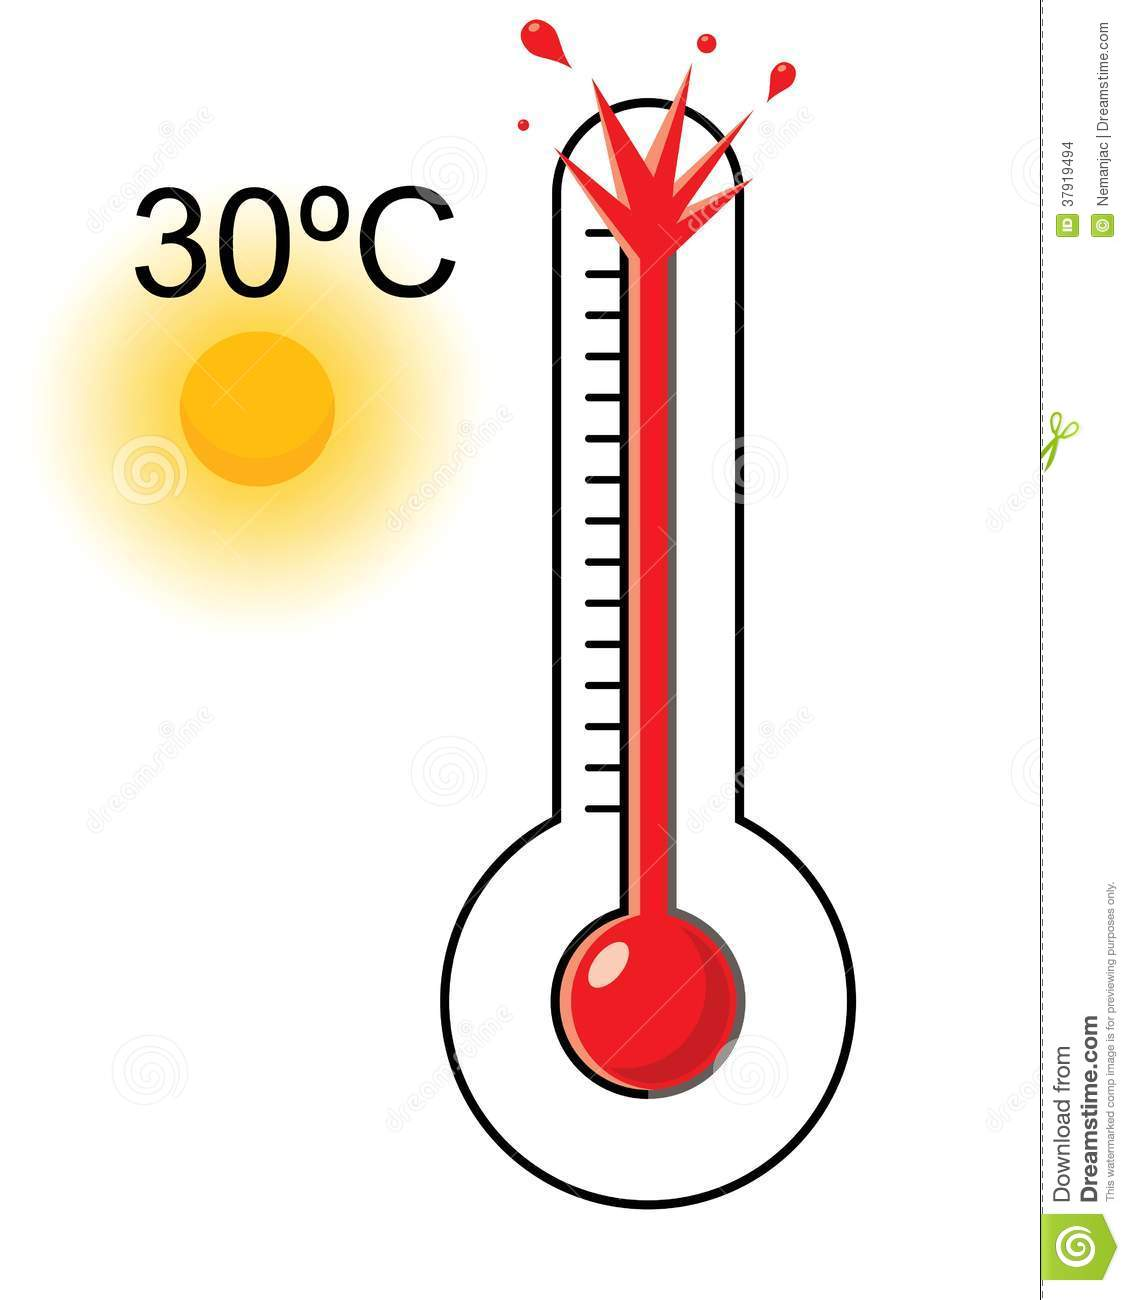 Chill clipart mild weather Weather Very Hot Clip clipart